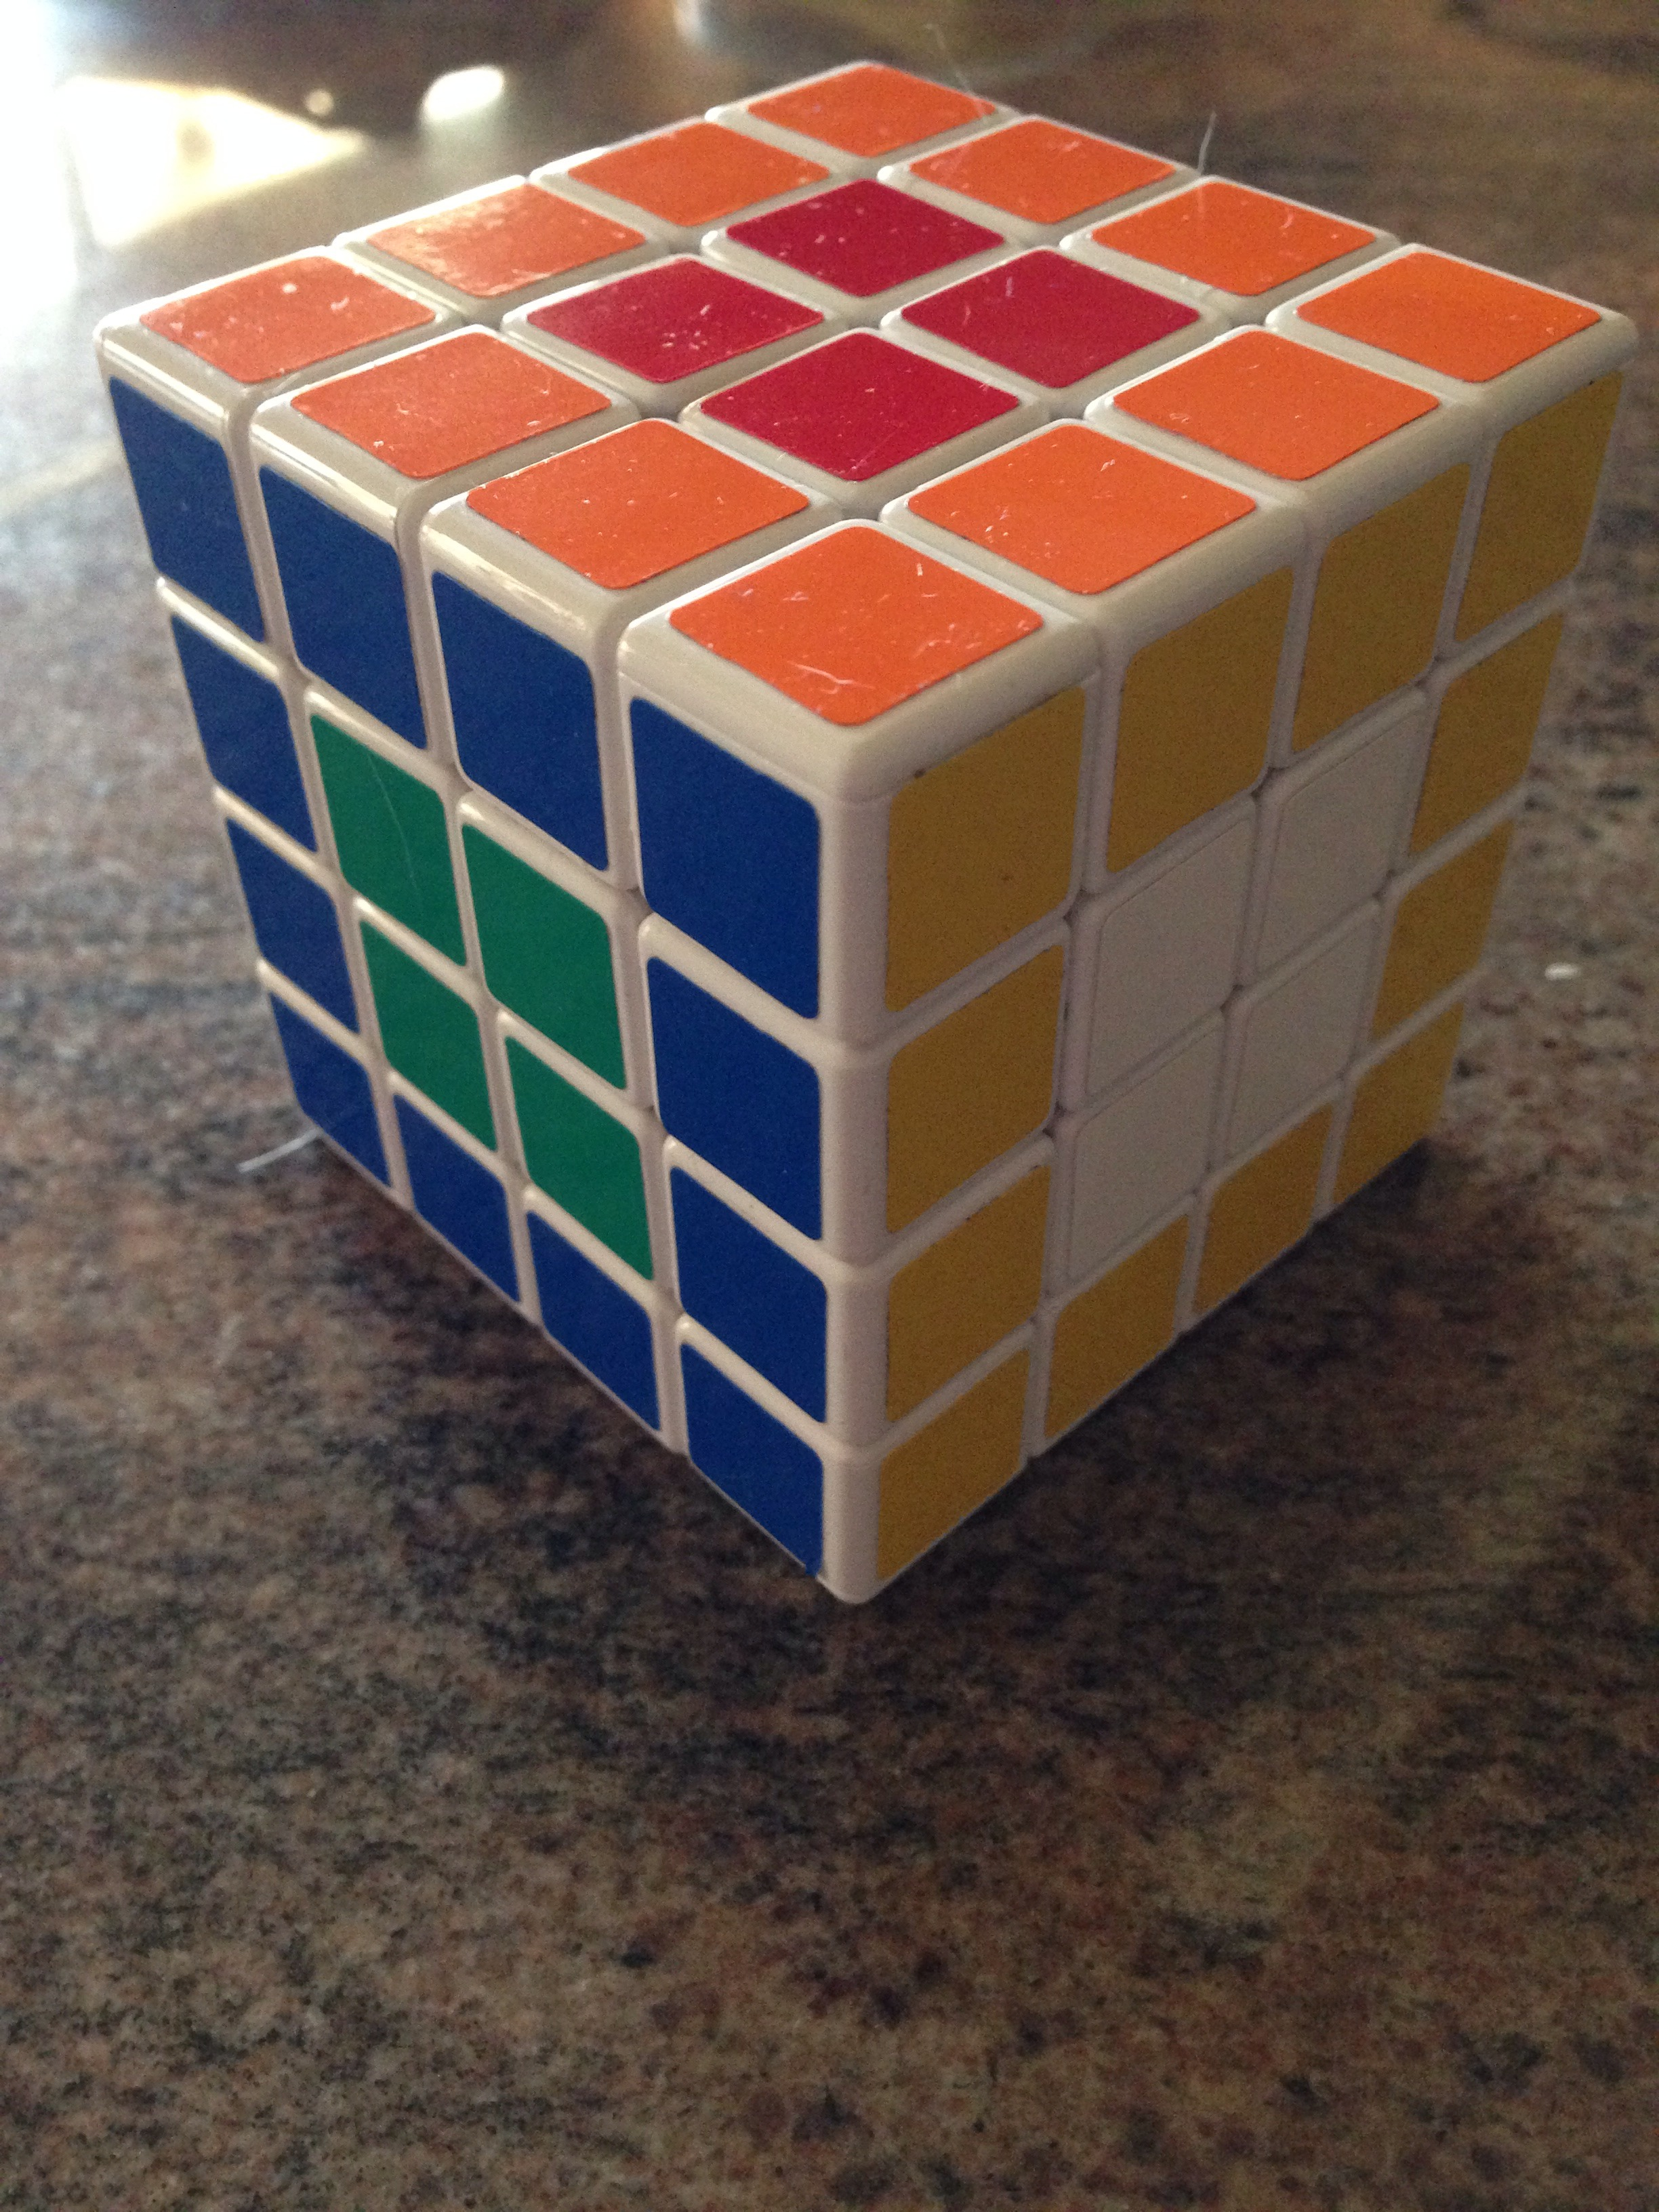 Picture of 4x4x4 Rubiks Cube Opposite Side Flowers